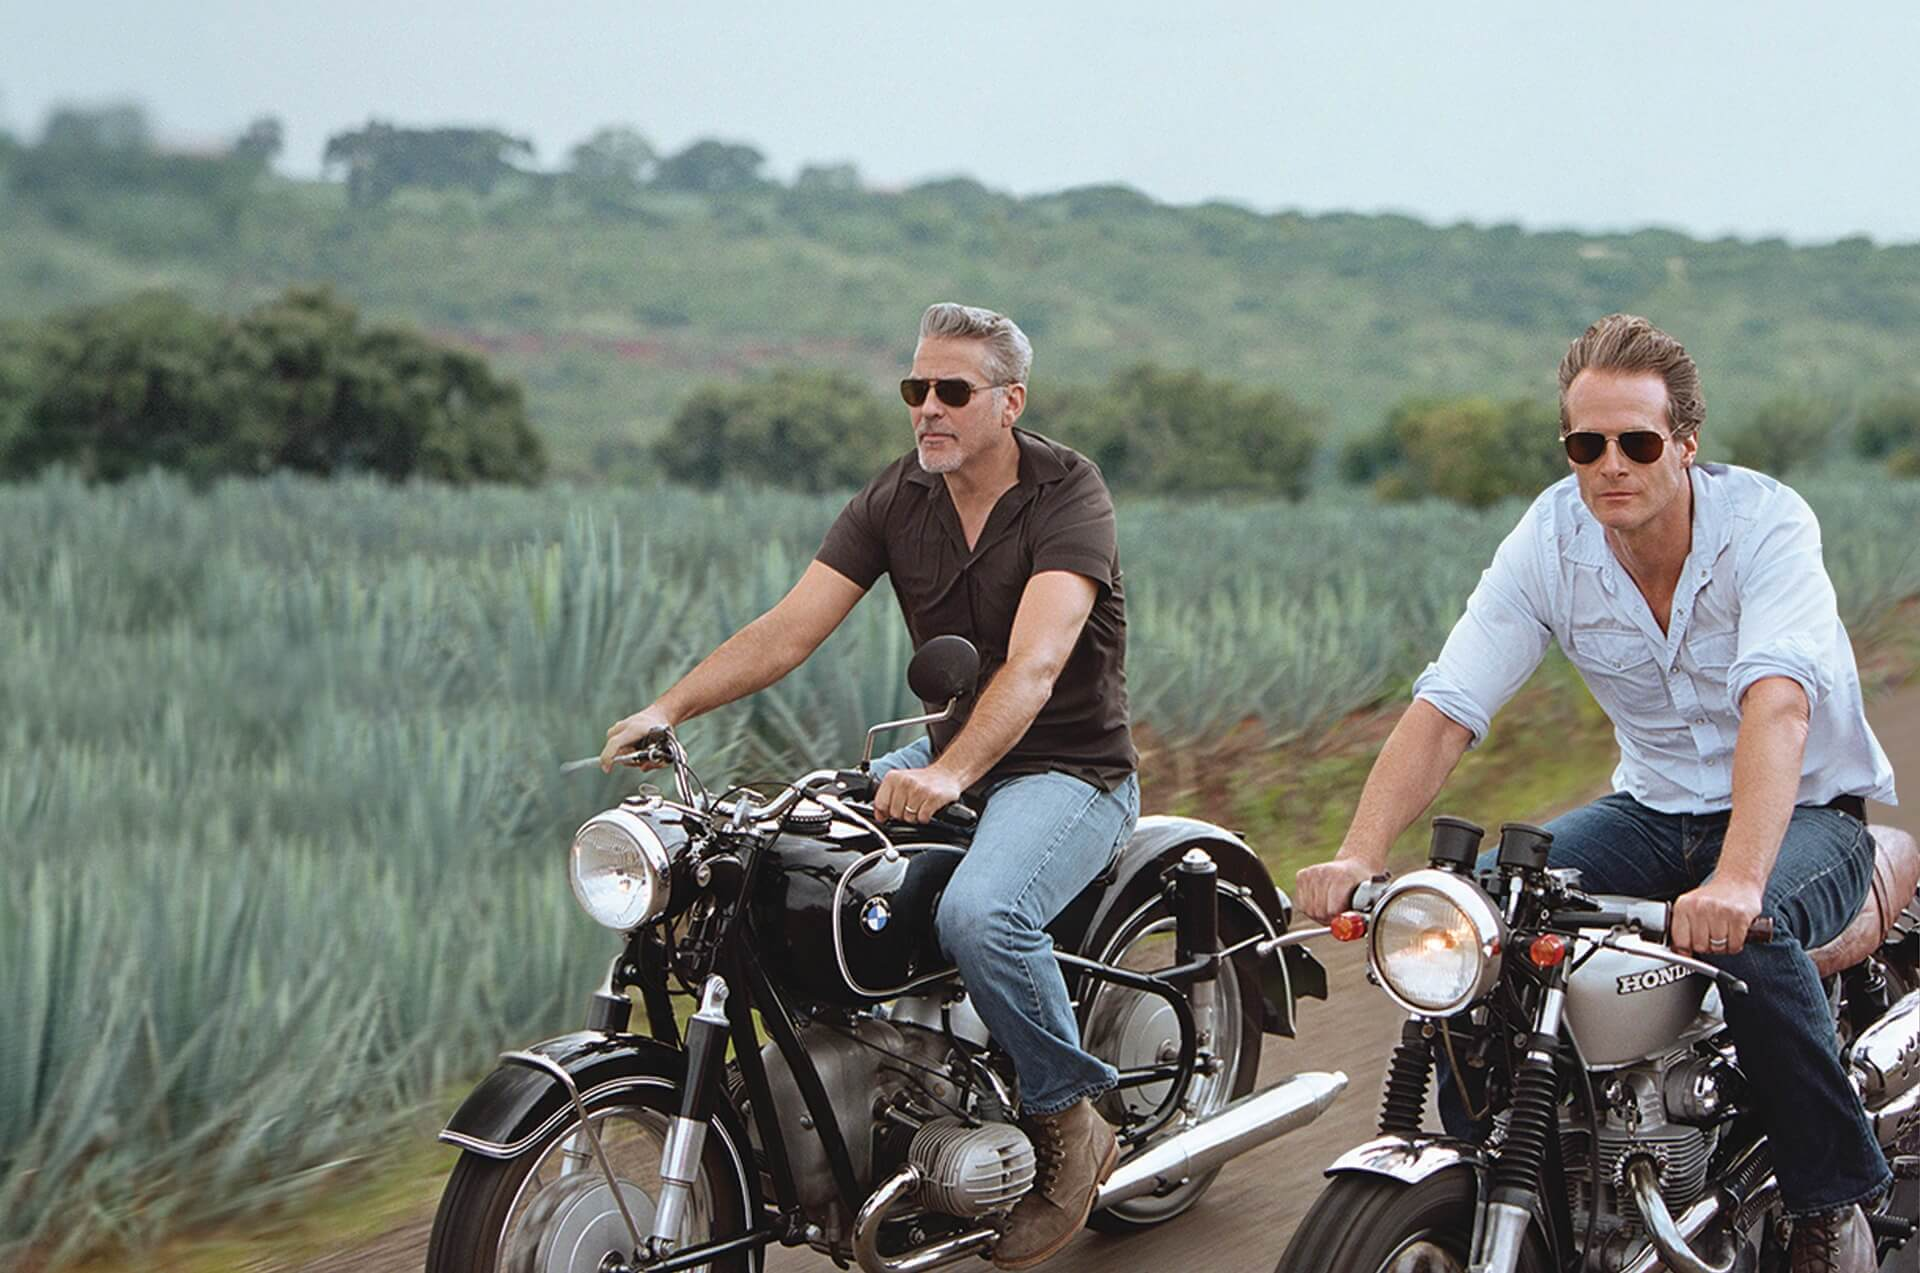 George Clooney, Rande Gerber and Mike Meldman sell Casamigos Tequila to Diageo for one billion dollars - What's Shakin' week of June 19